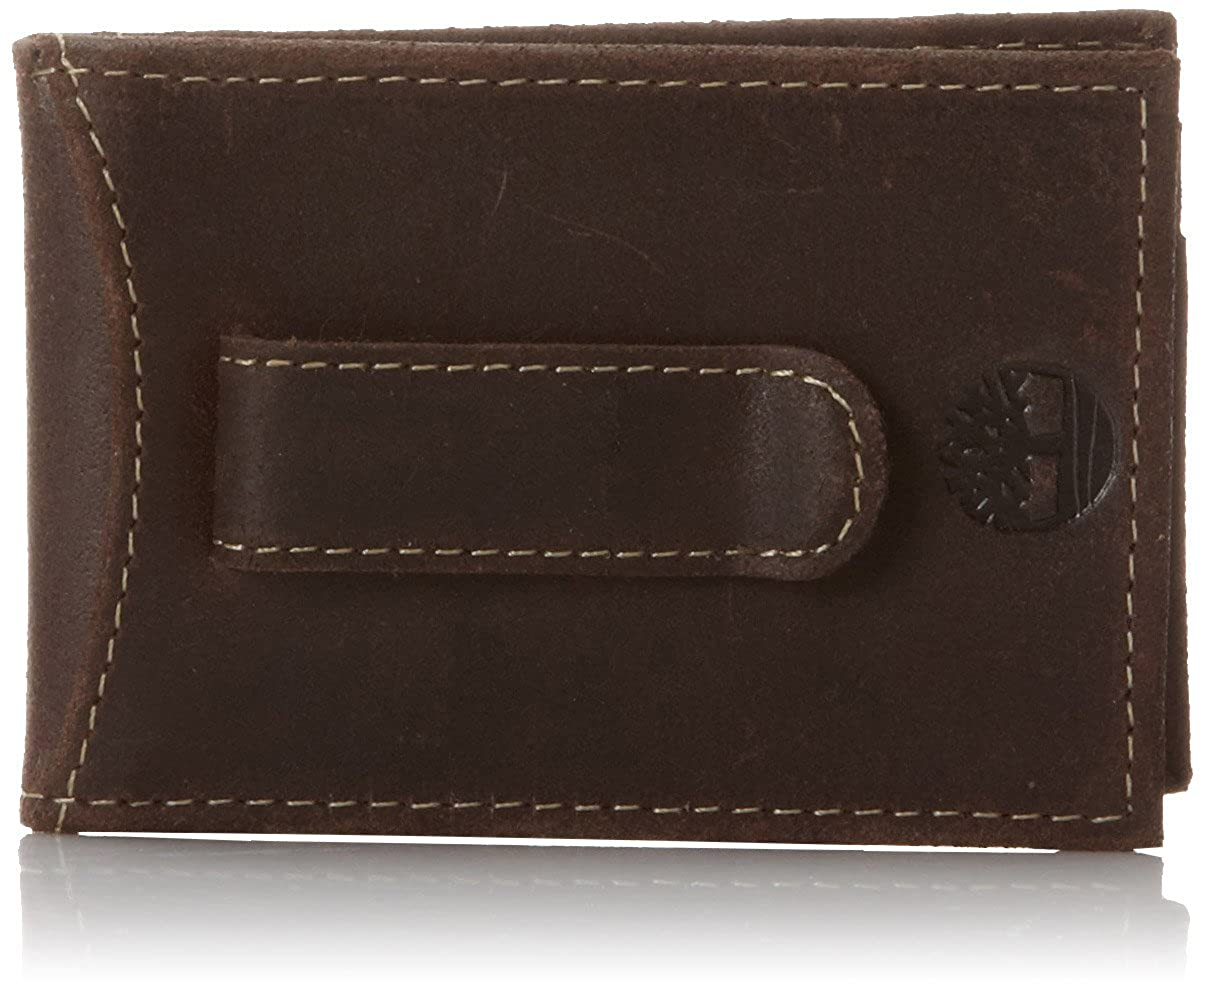 Timberland Men's Delta Flip Cip Brown One Size Timberland Accessories D65223